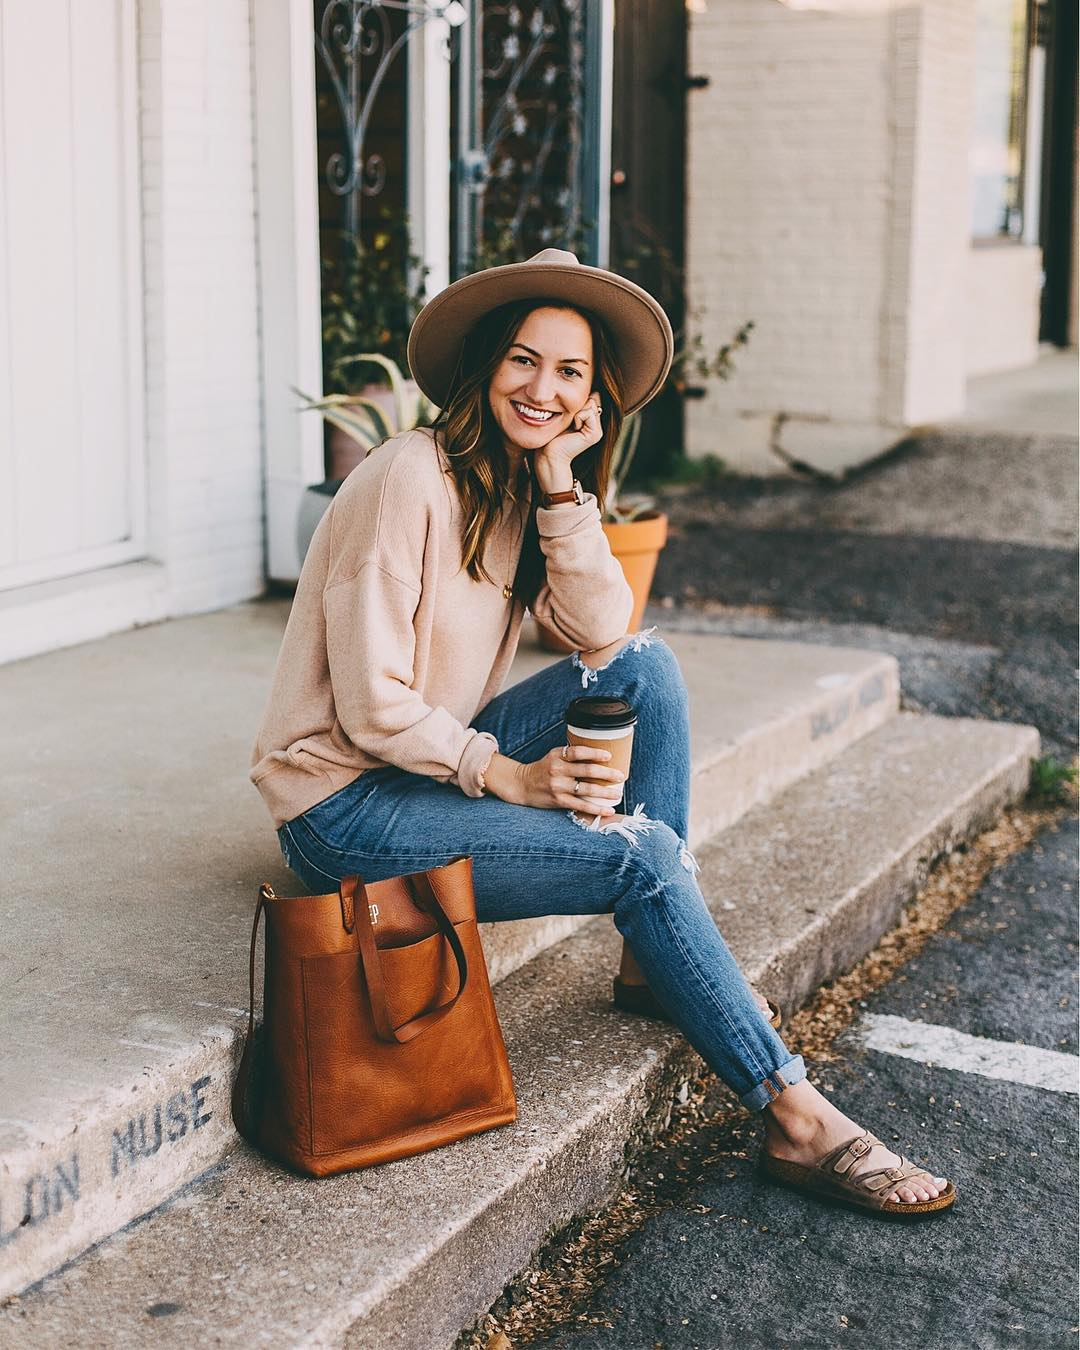 Olivia Watson   @livvylandblog is an Austin-based influencer with a casual, colorful, down-to-earth style.